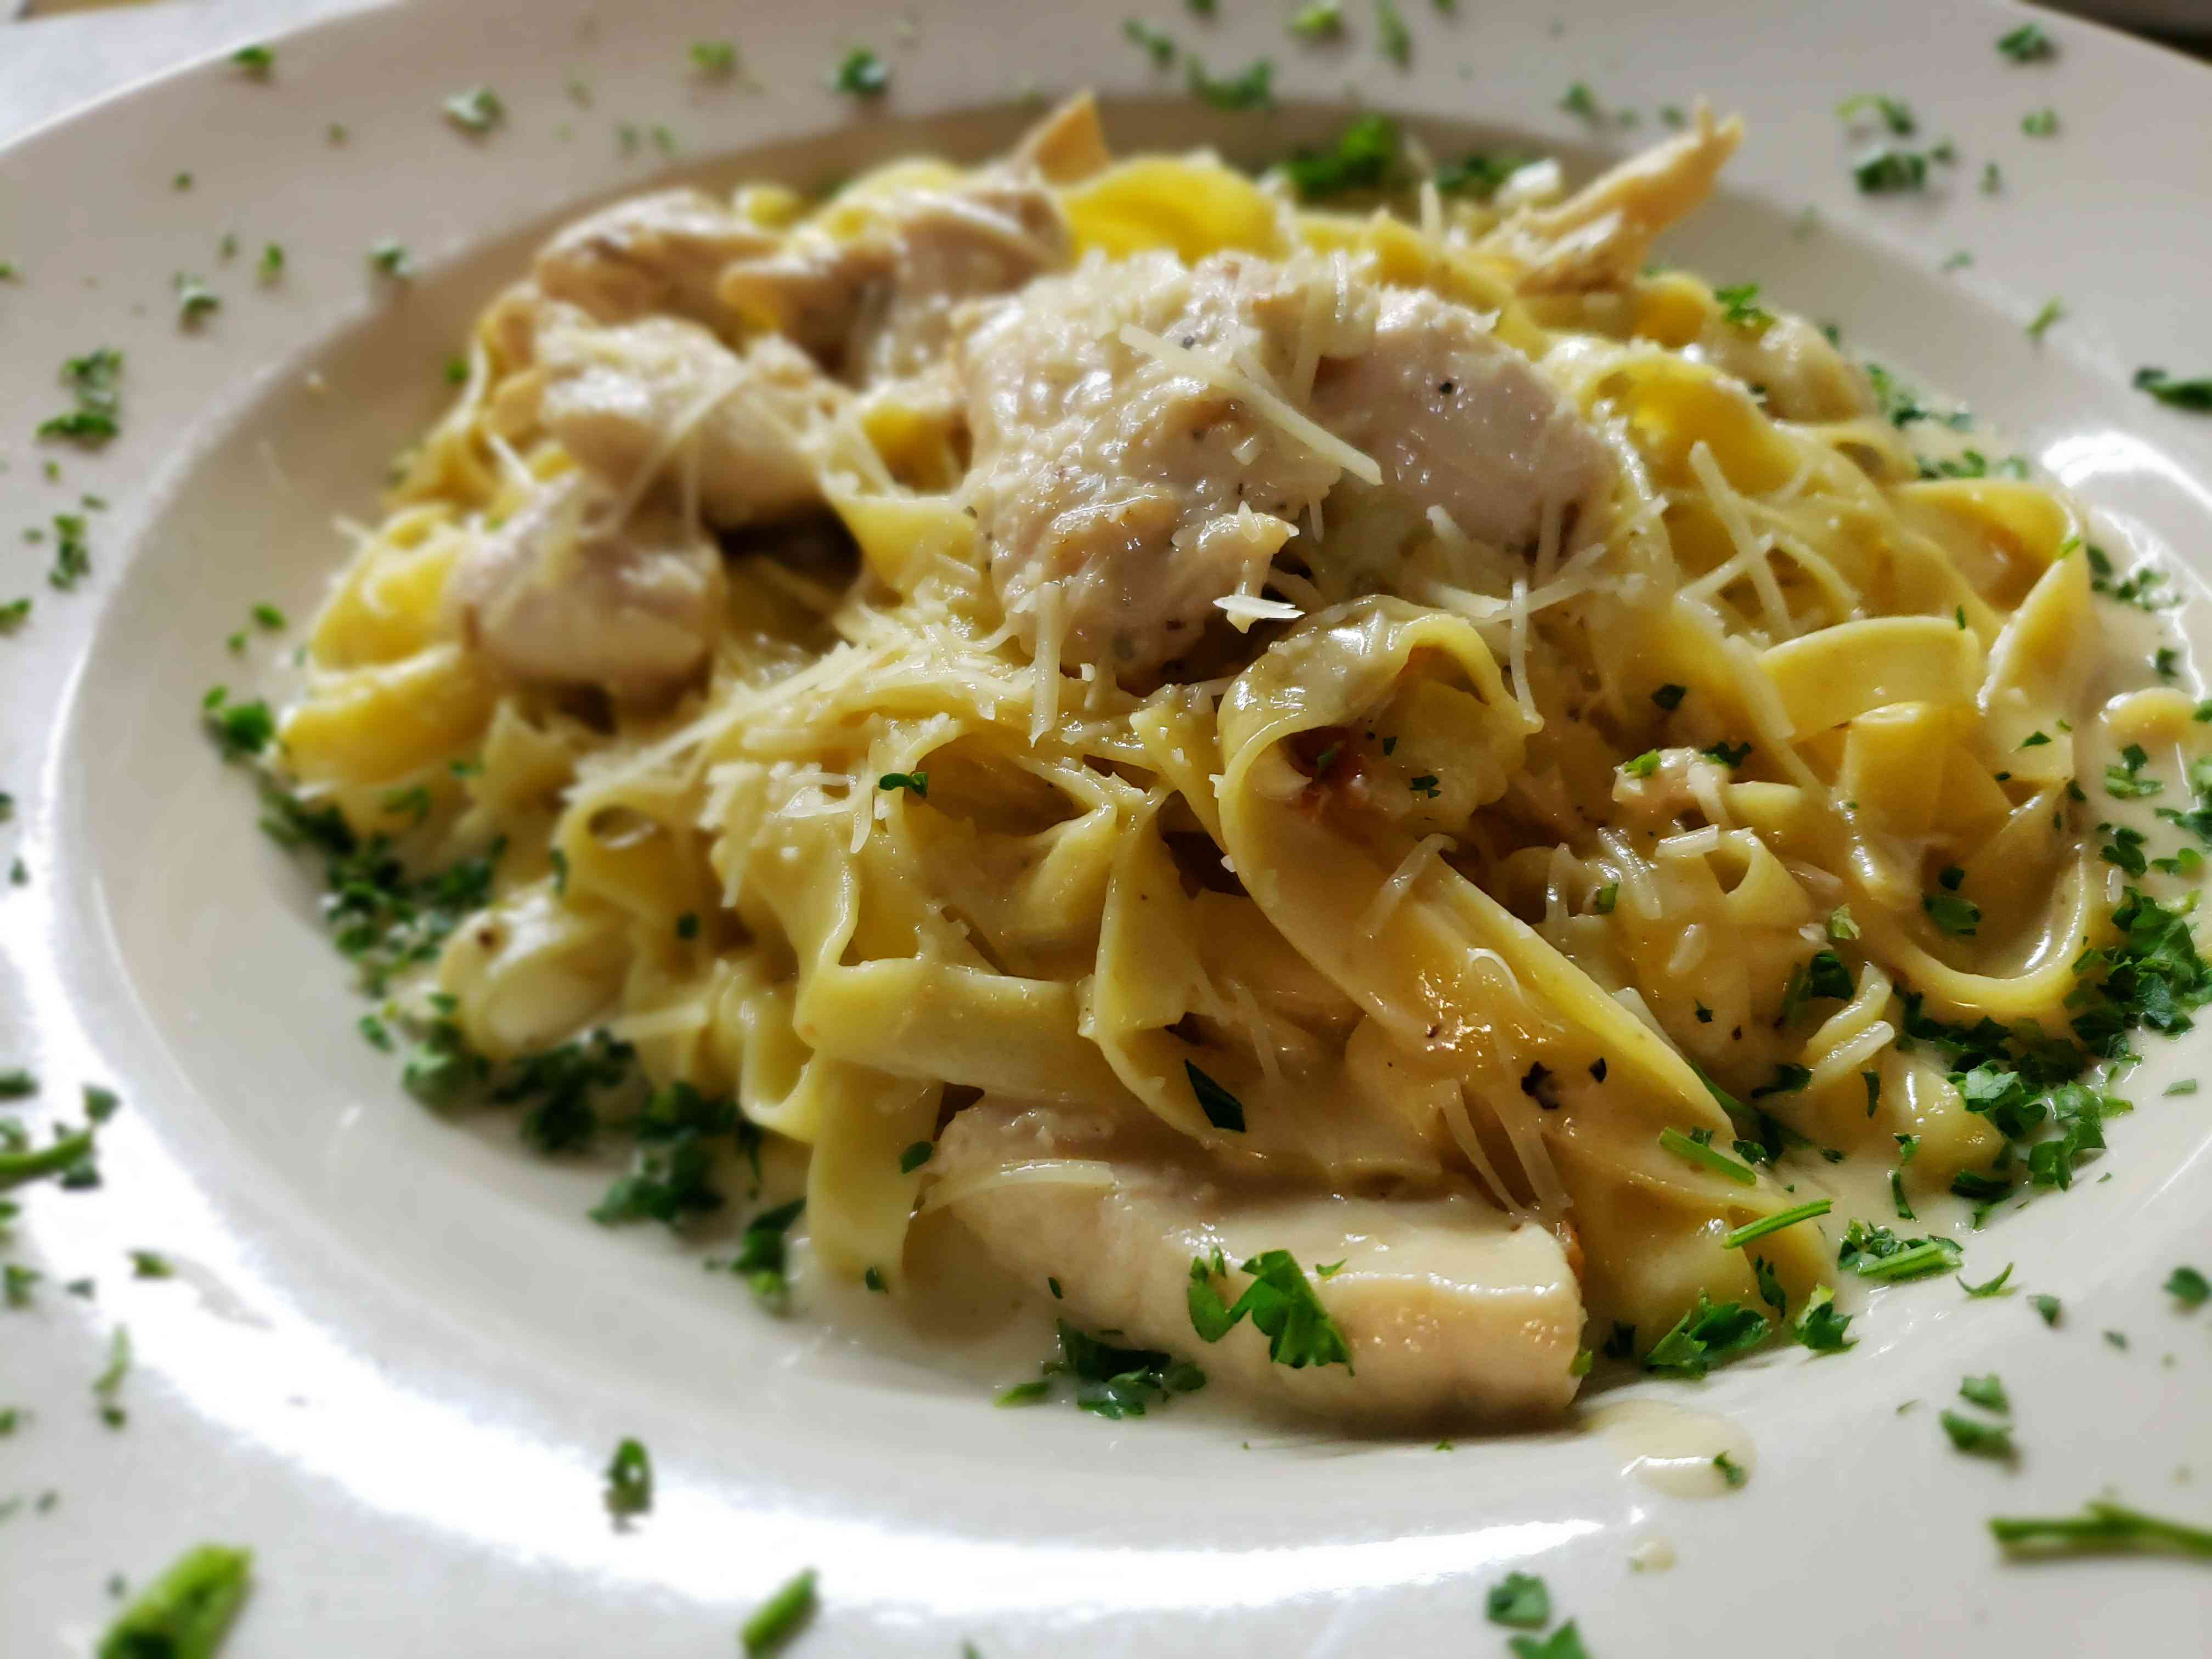 Fettuccine pasta with chicken, shredded parmesan cheese and diced cilantro